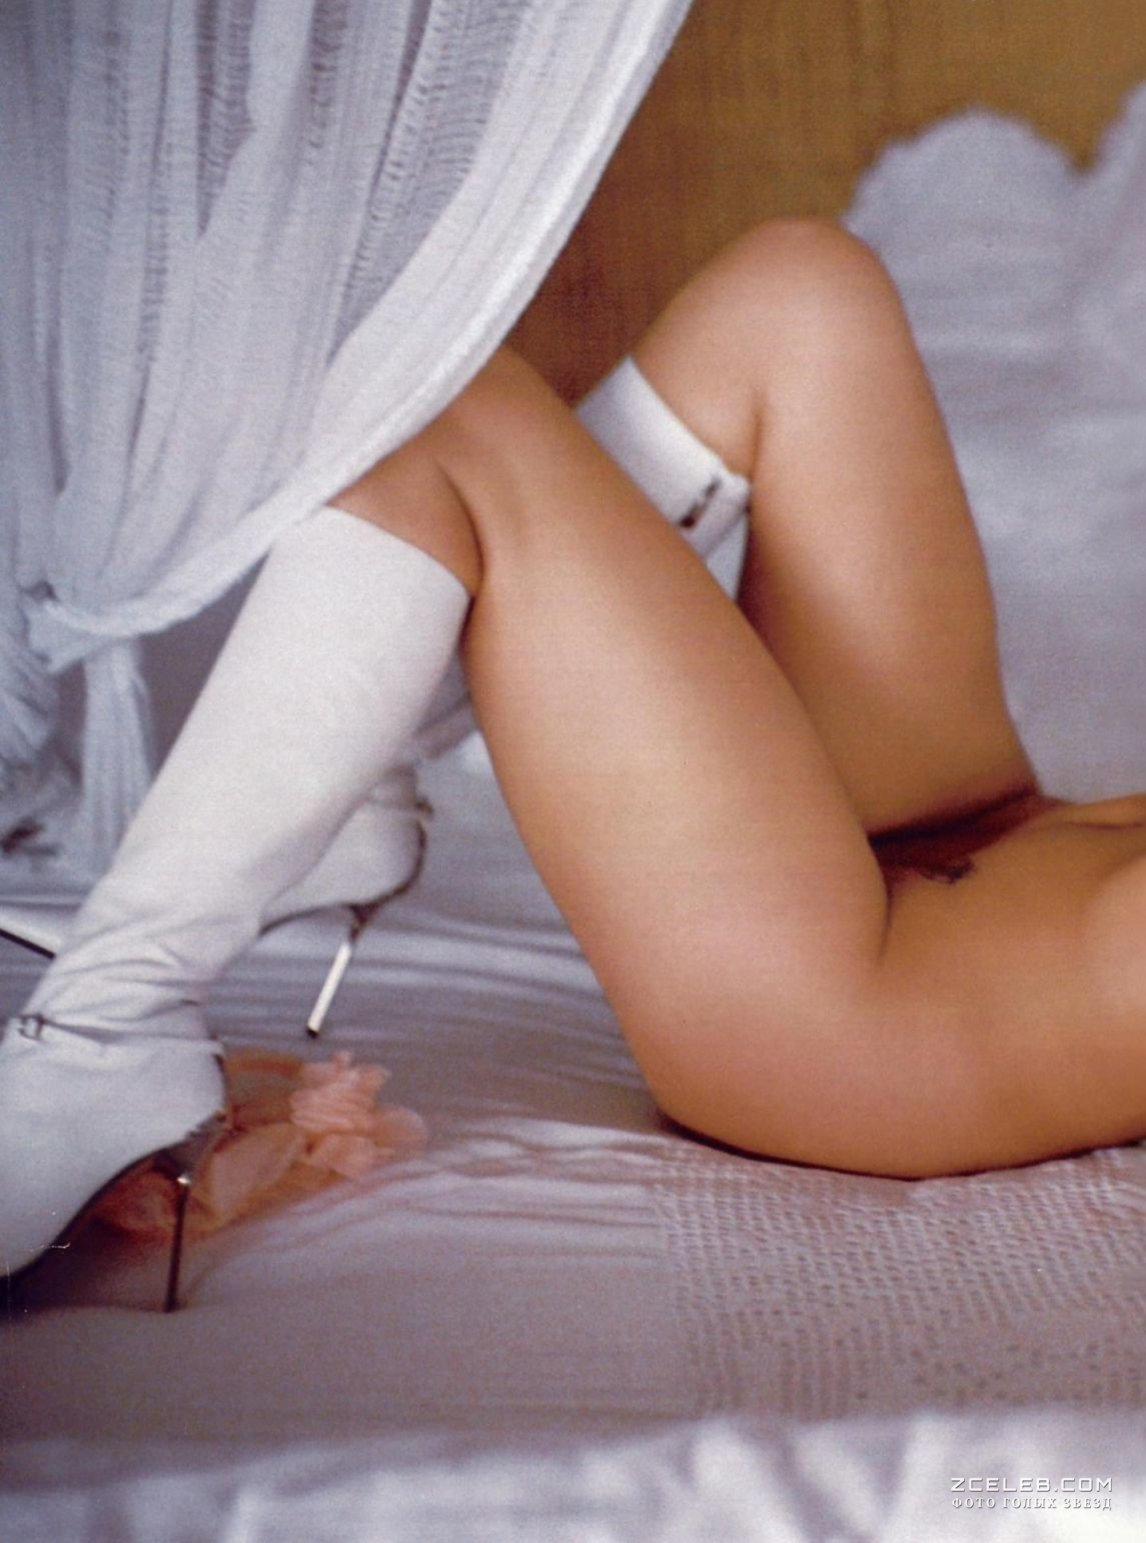 Rachel hunter naked — photo 1